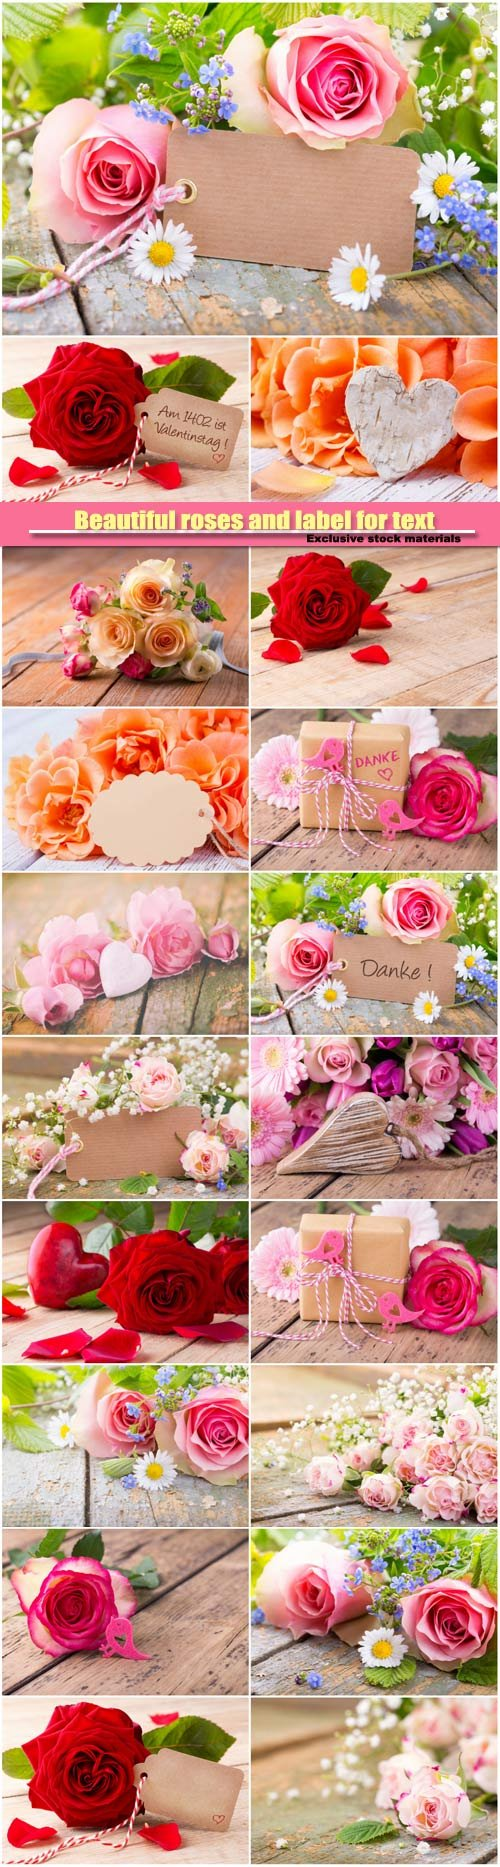 Beautiful roses and label for text